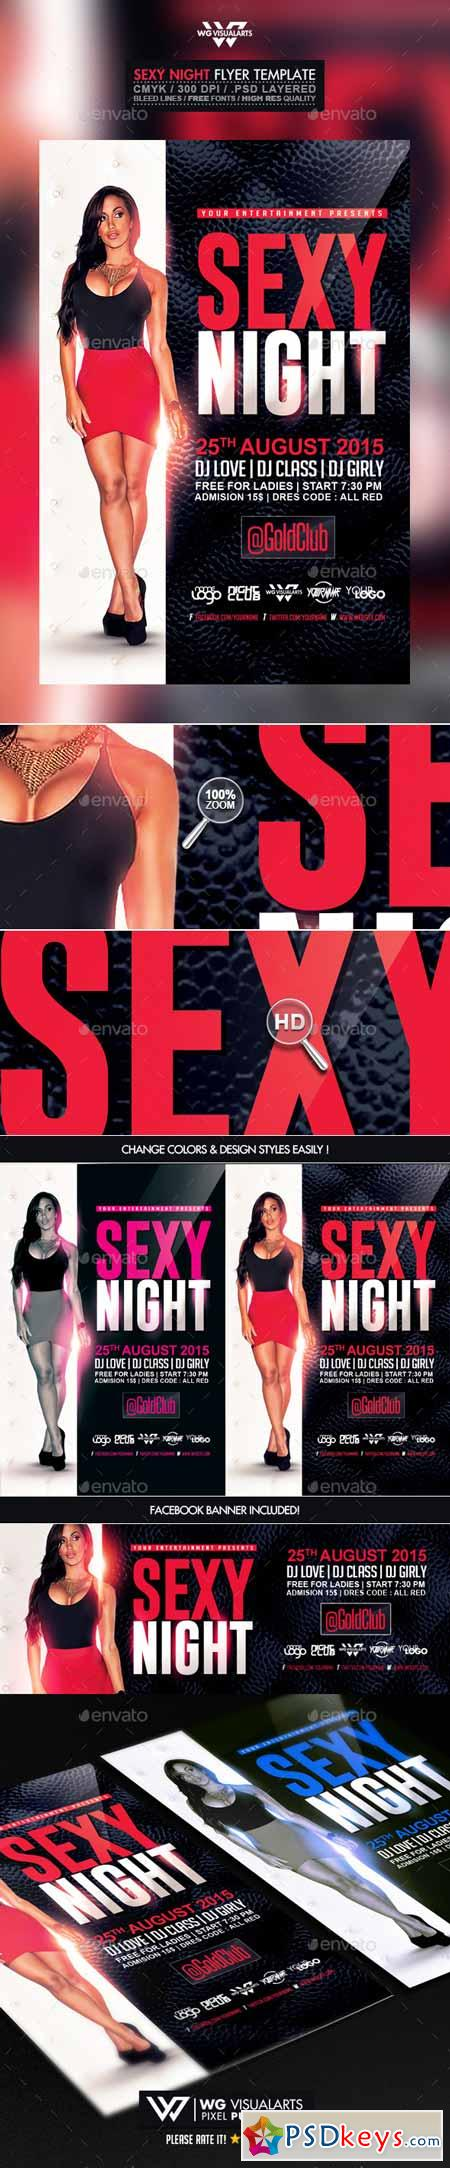 Sexy Red Black and White Night Flyer Template 10492537